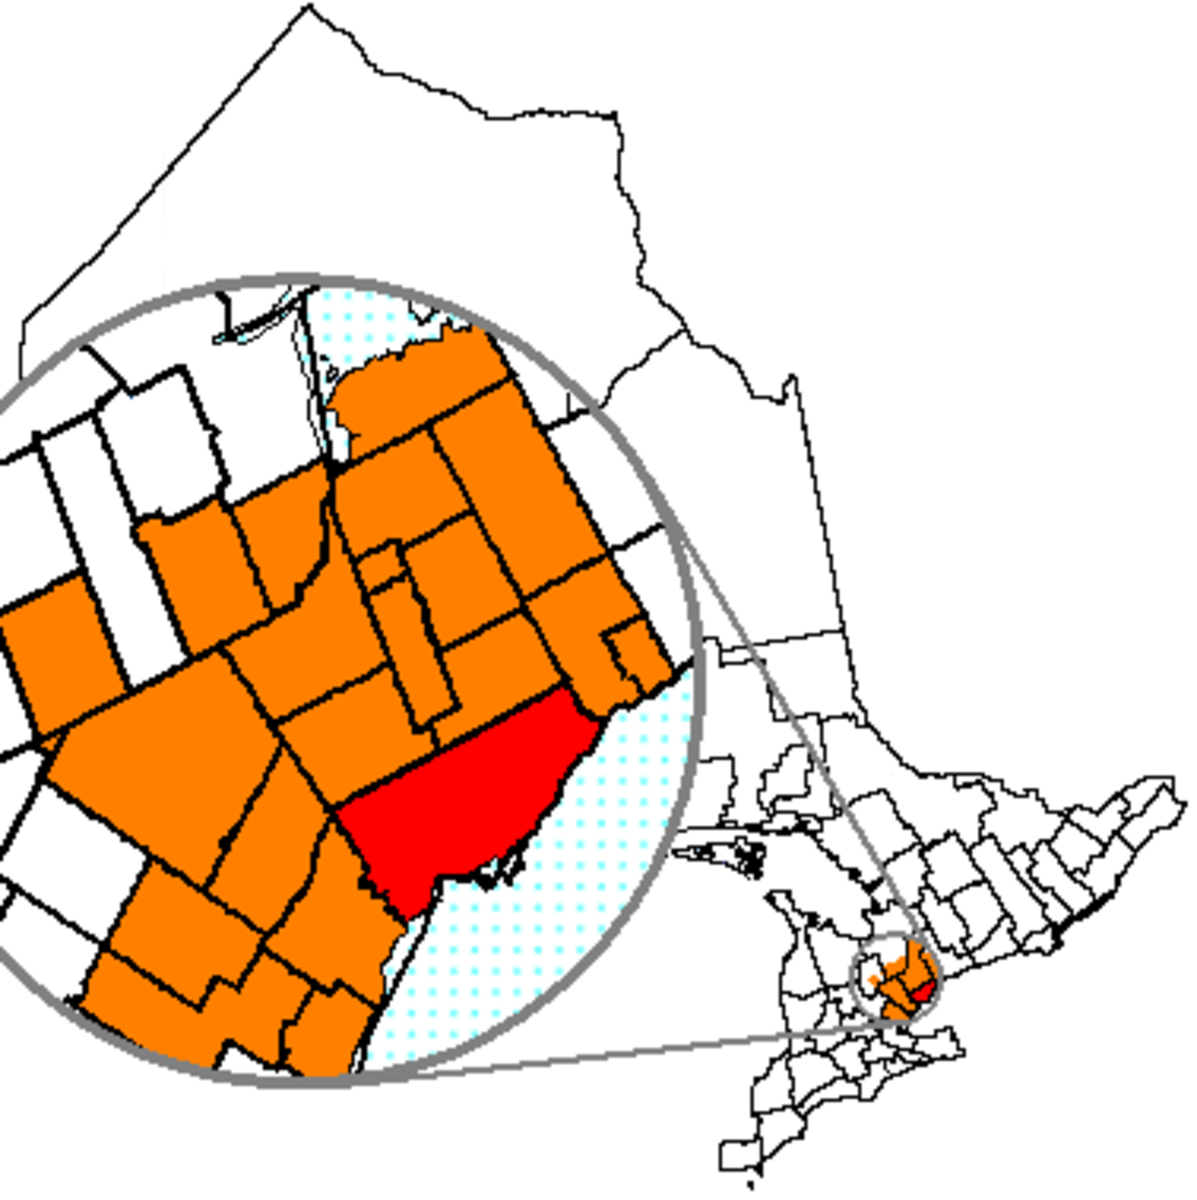 Map location of Toronto, Ontario